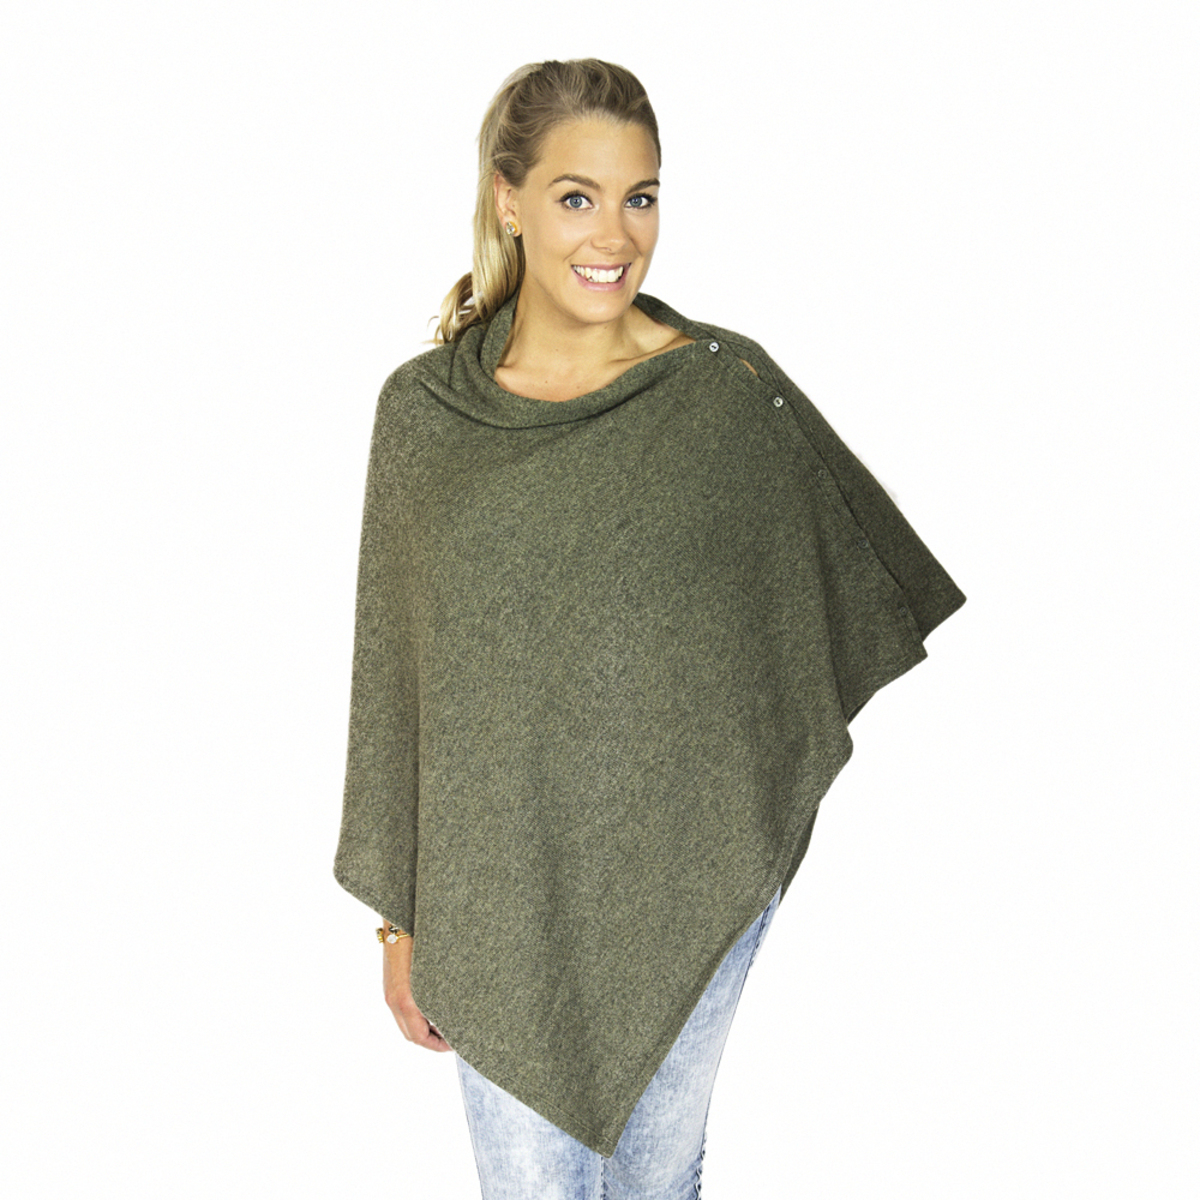 Lisa Yang Poncho med knappar Sarah Army Green 100% Cashmere - DAYSTYLE 43d7033d6bba9